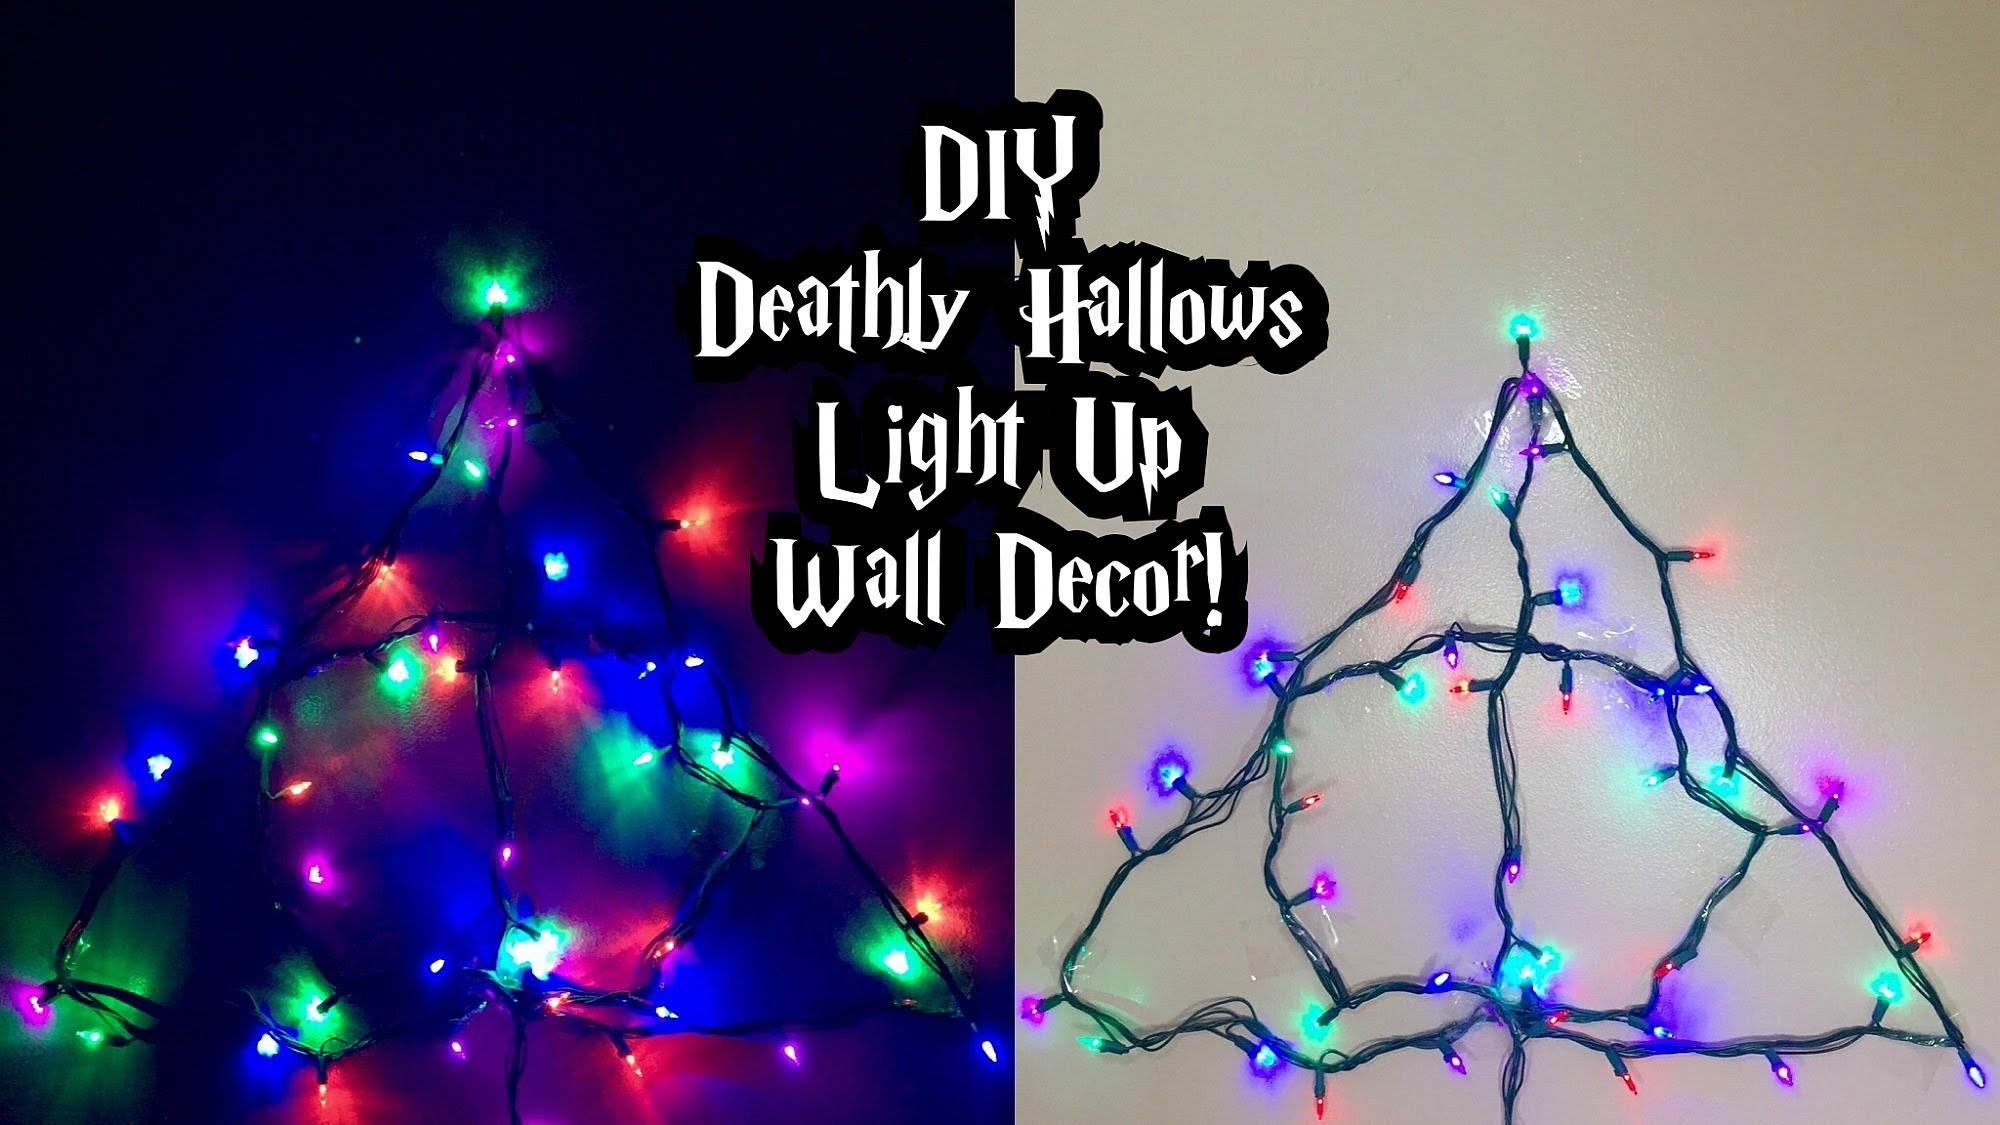 Fixing Christmas Lights To Wall : DIY Deathly Hallows light up wall decor - Everything 4 Christmas